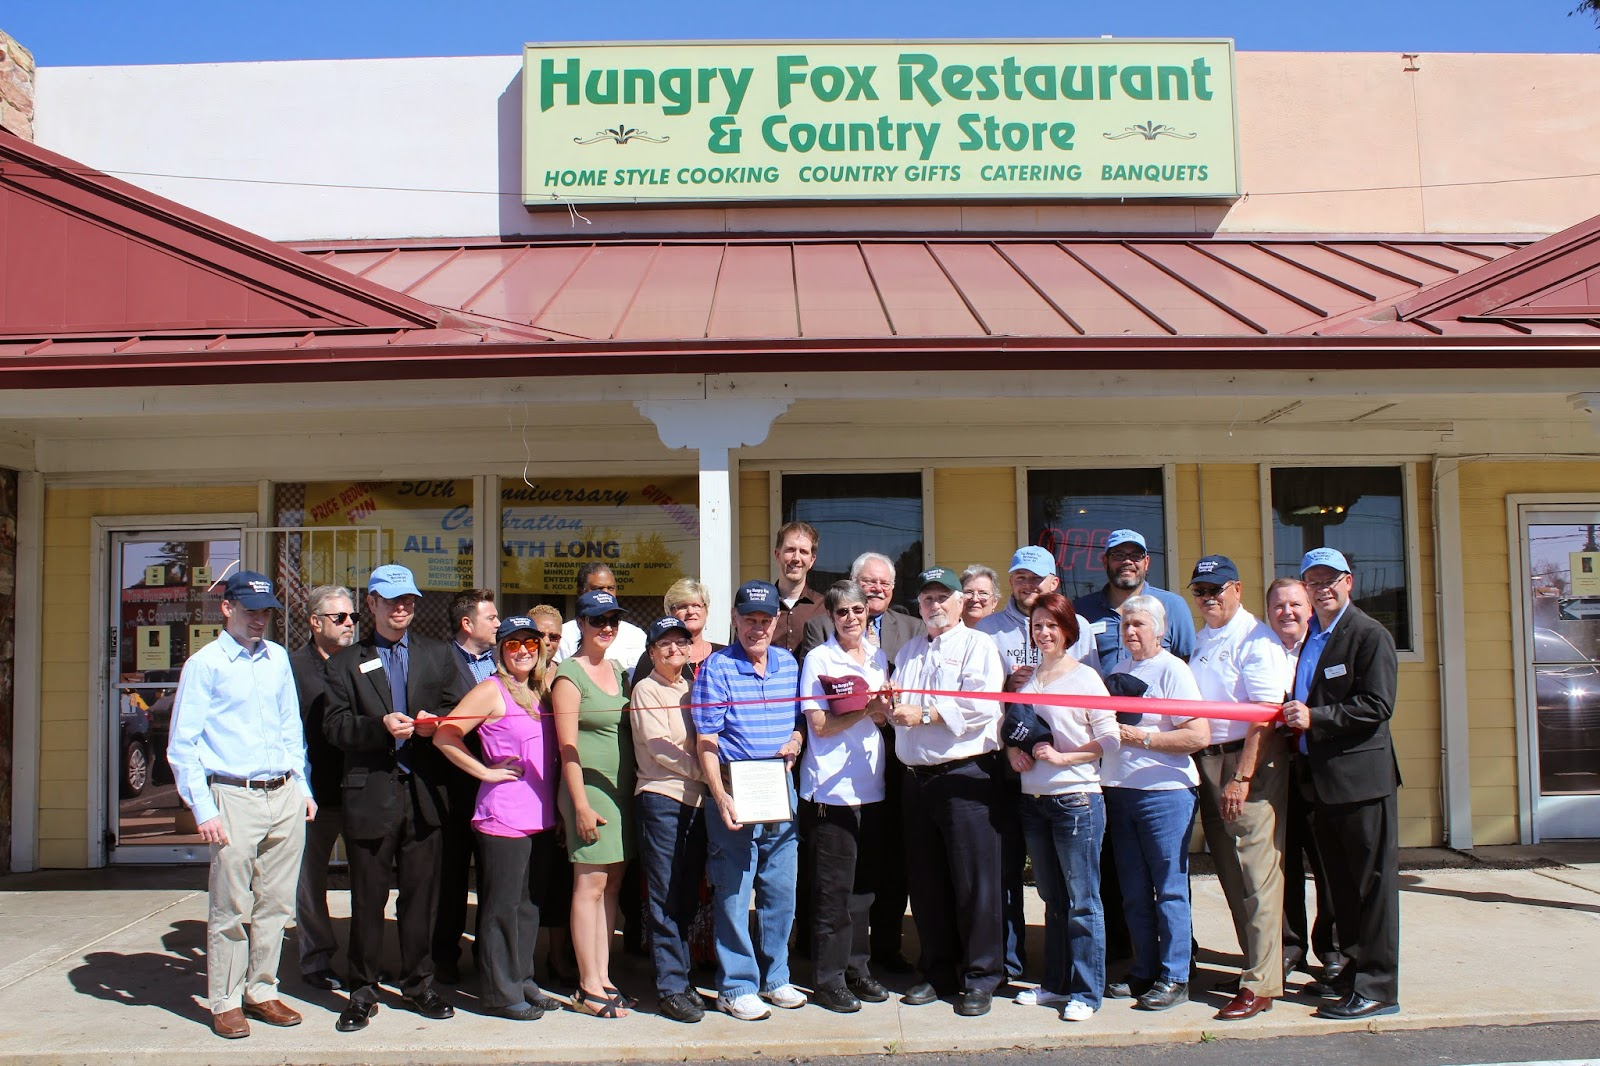 Rick and Georganne Connors bought The Hungry Fox Restaurant in 2005 and have since made it their own. From the 400 loaves of fresh baked bread to the 10,000 to 12,000 eggs cooked weekly, you can feel the love they put into each meal. Georganne also puts her special unique products in the country store for all to enjoy.  The Hungry Fox Restaurant and Country Store 4637 E. Broadway Boulevard, 85711 (520) 326-2835